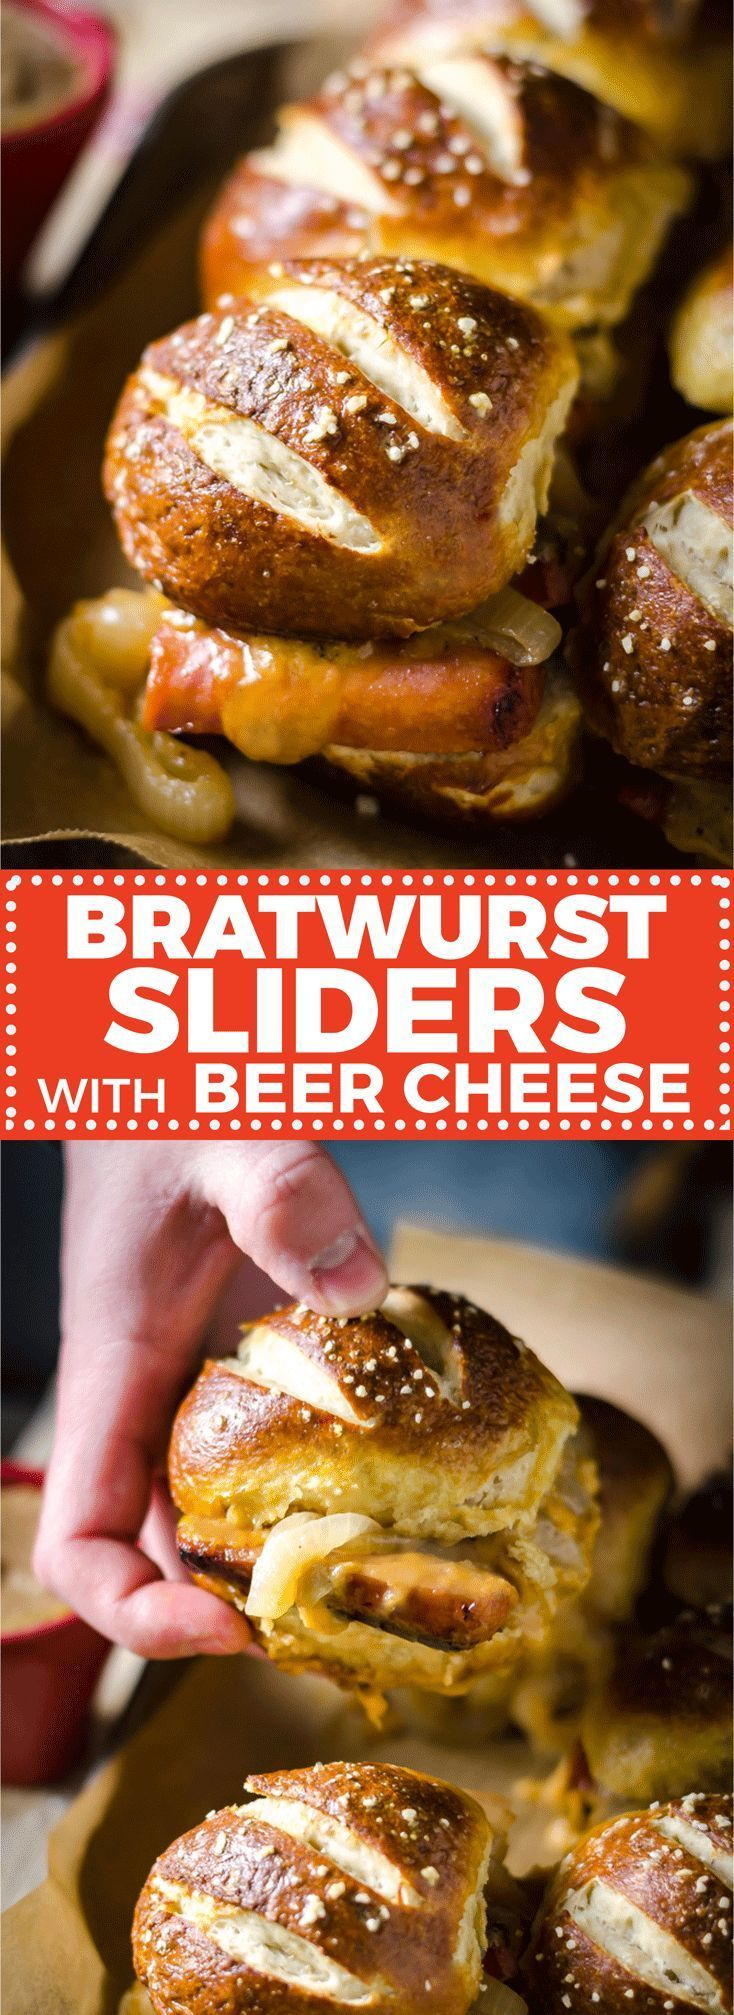 Sliders with Beer Cheese and Beer Braised Onions Bratwurst Sliders with Beer Cheese and Beer Braised Onions. These loaded sliders are served on pretzel buns and are perfect for parties or football season! | Bratwurst Sliders with Beer Cheese and Beer Braised Onions. These loaded sliders are served on pretzel buns and are perfect for parties or fo...